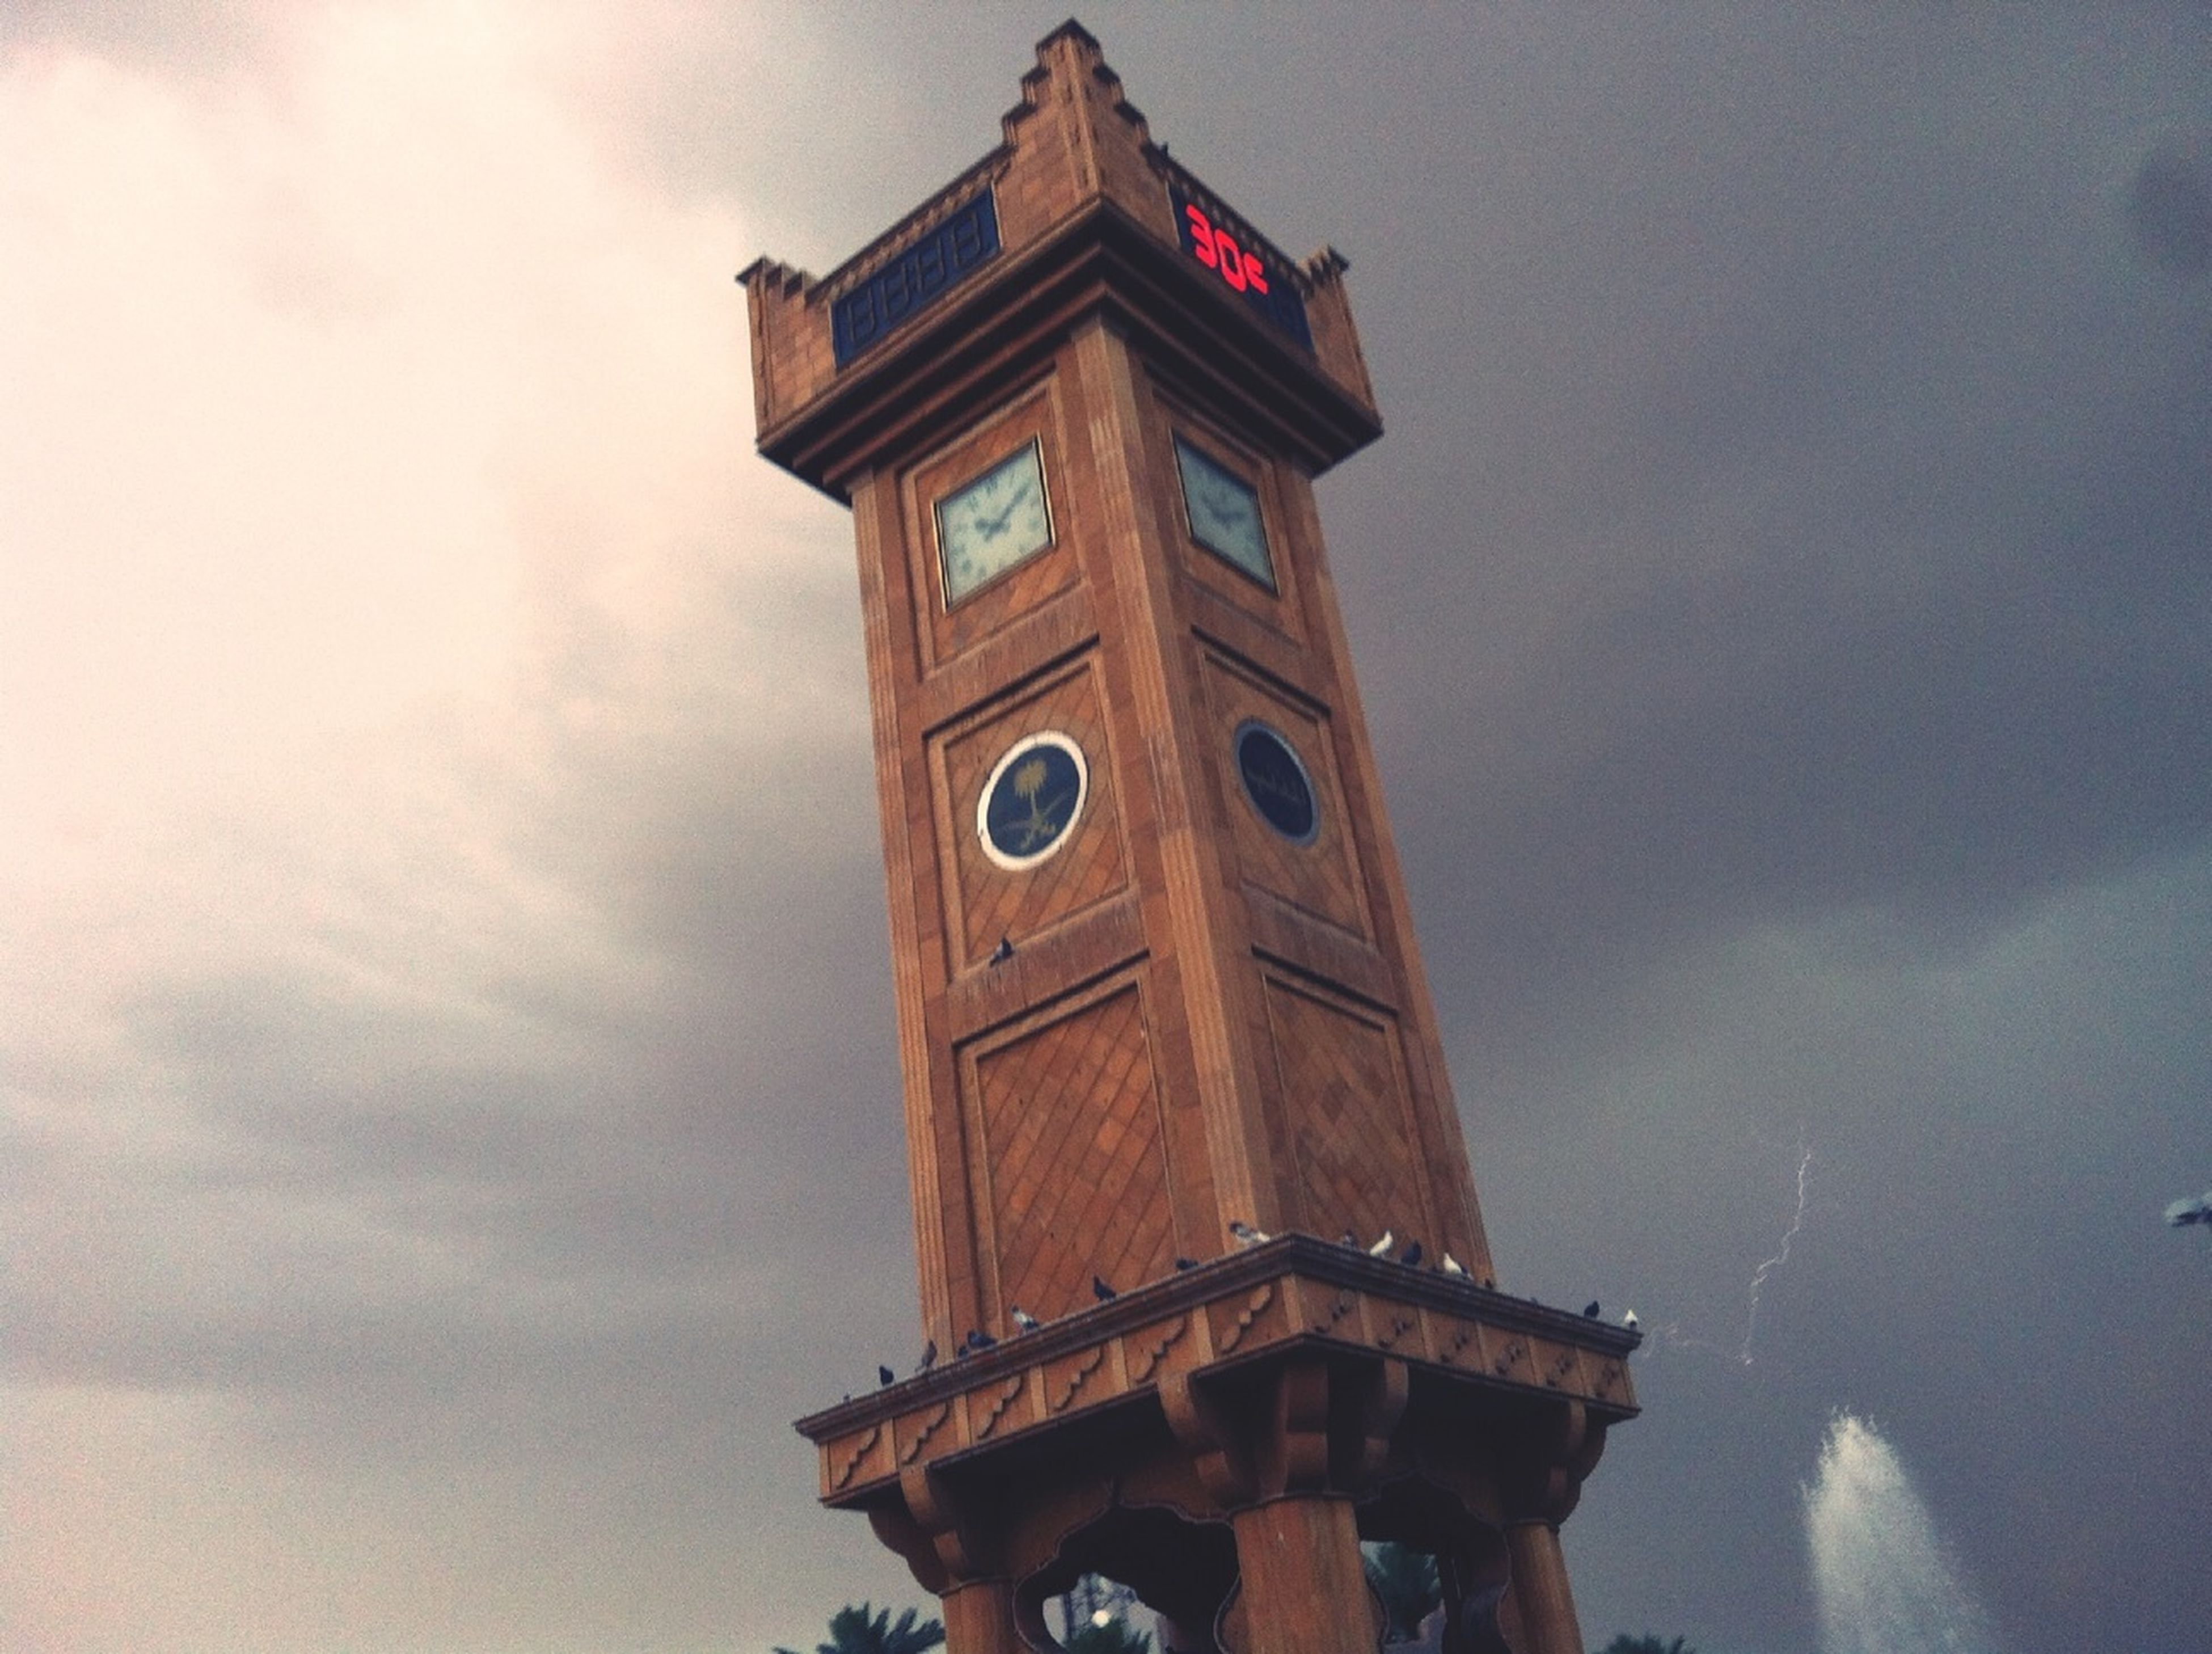 architecture, low angle view, built structure, building exterior, clock tower, tower, sky, clock, time, cloud - sky, tall - high, history, outdoors, no people, city, cloud, day, travel destinations, cloudy, religion